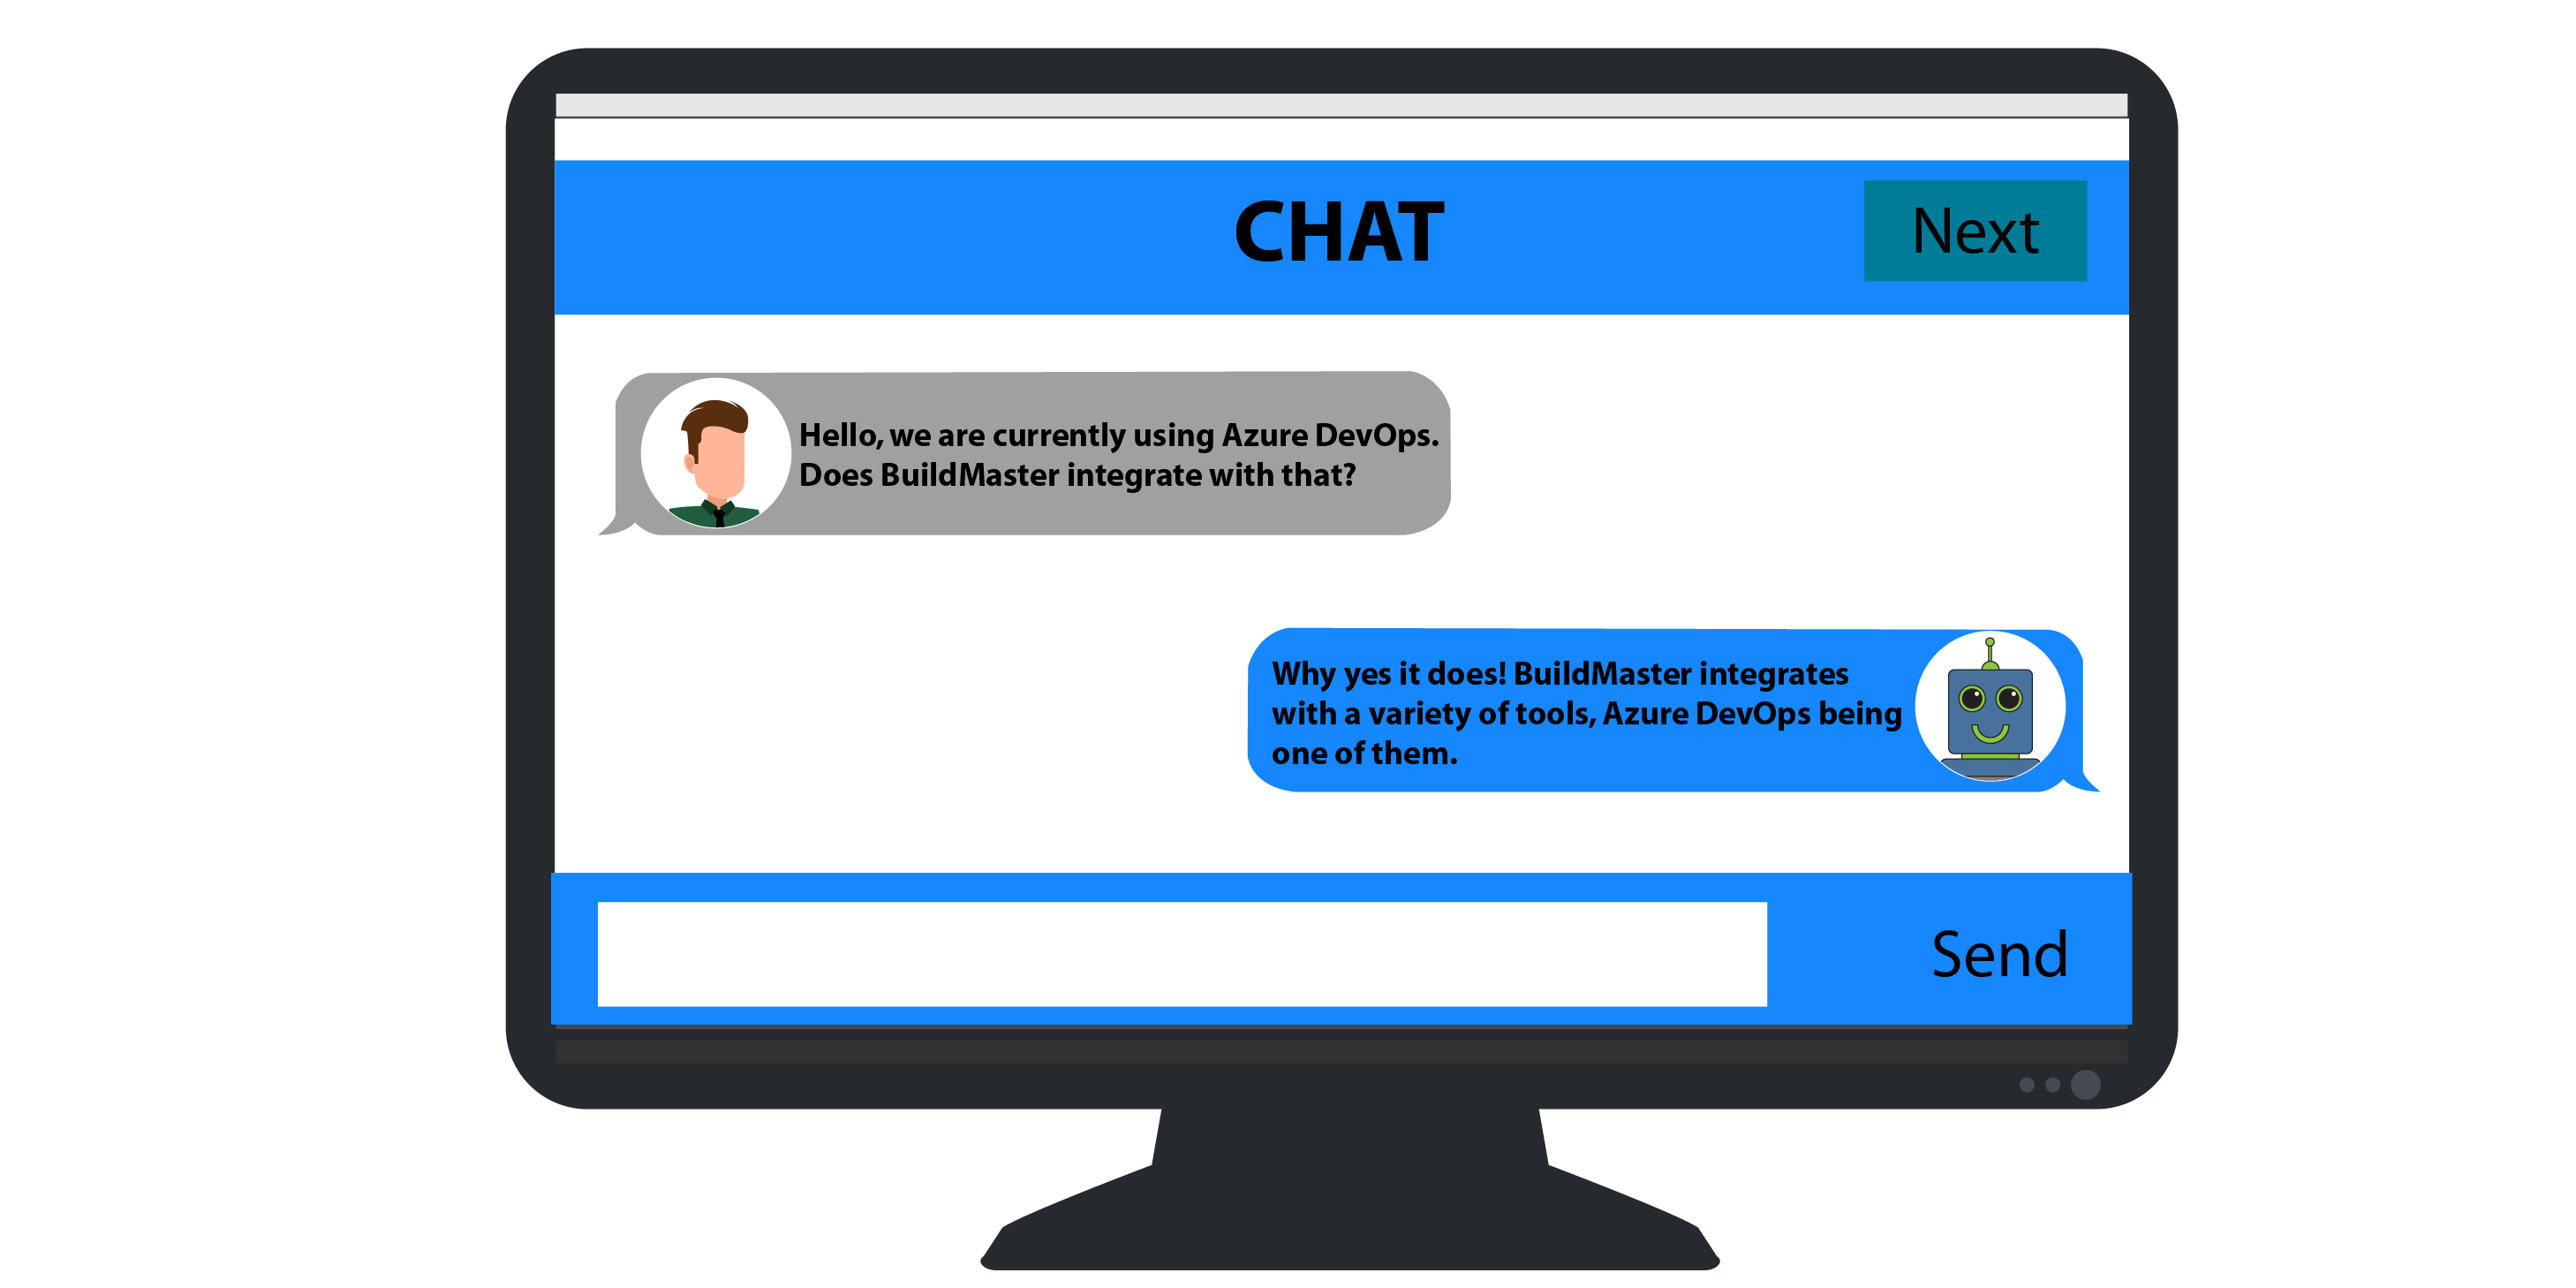 ChatBot being used to answer real-time questions